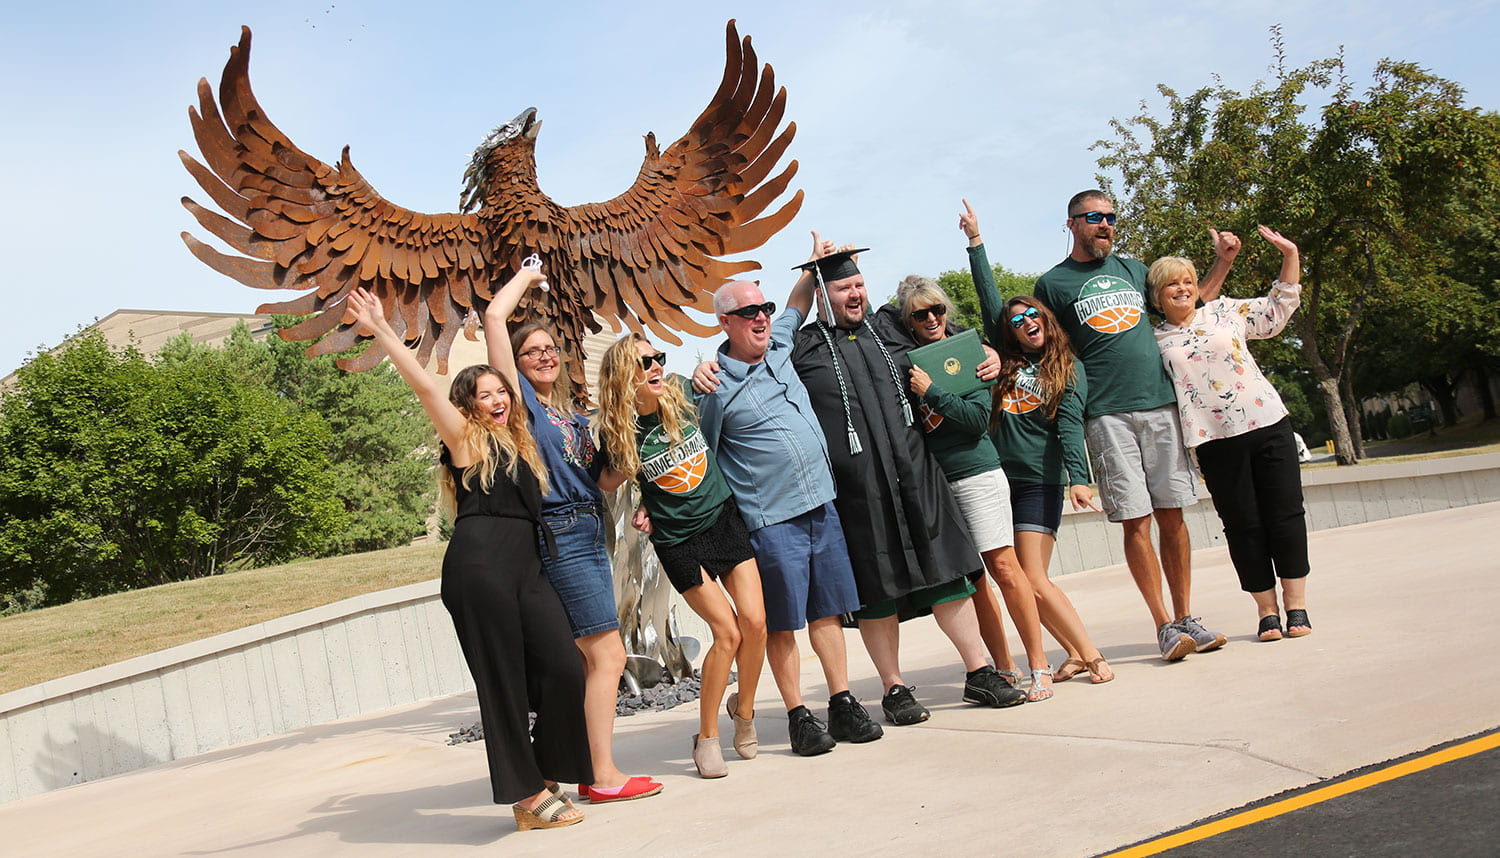 A graduate and thier guests post in front of the Phoenix sculpture.